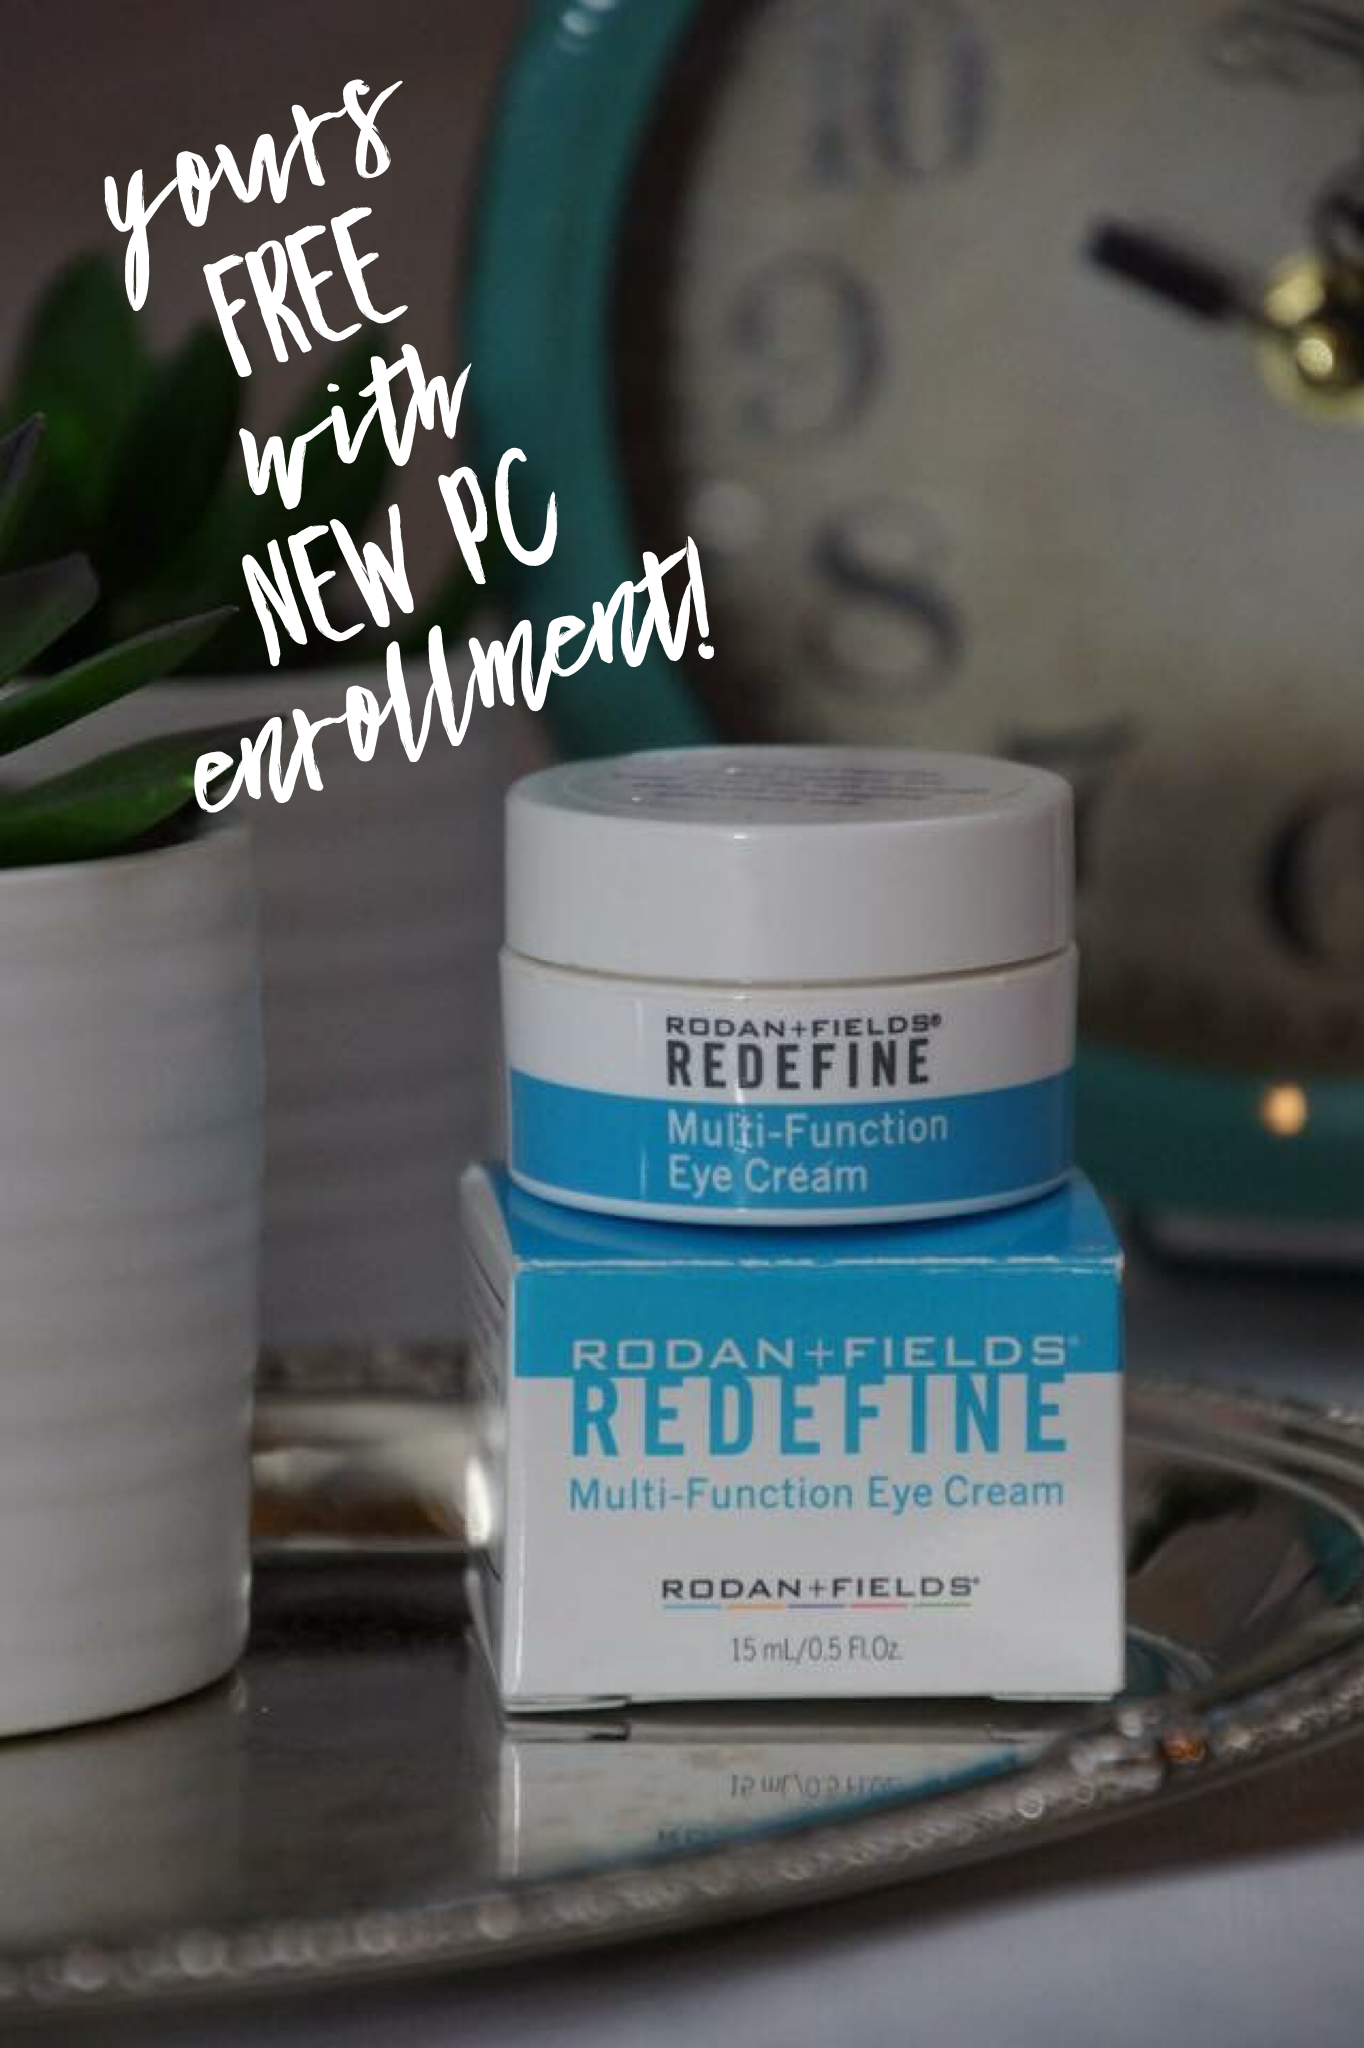 Free Eye Cream When You Sign Up As My New Pc From Now Through